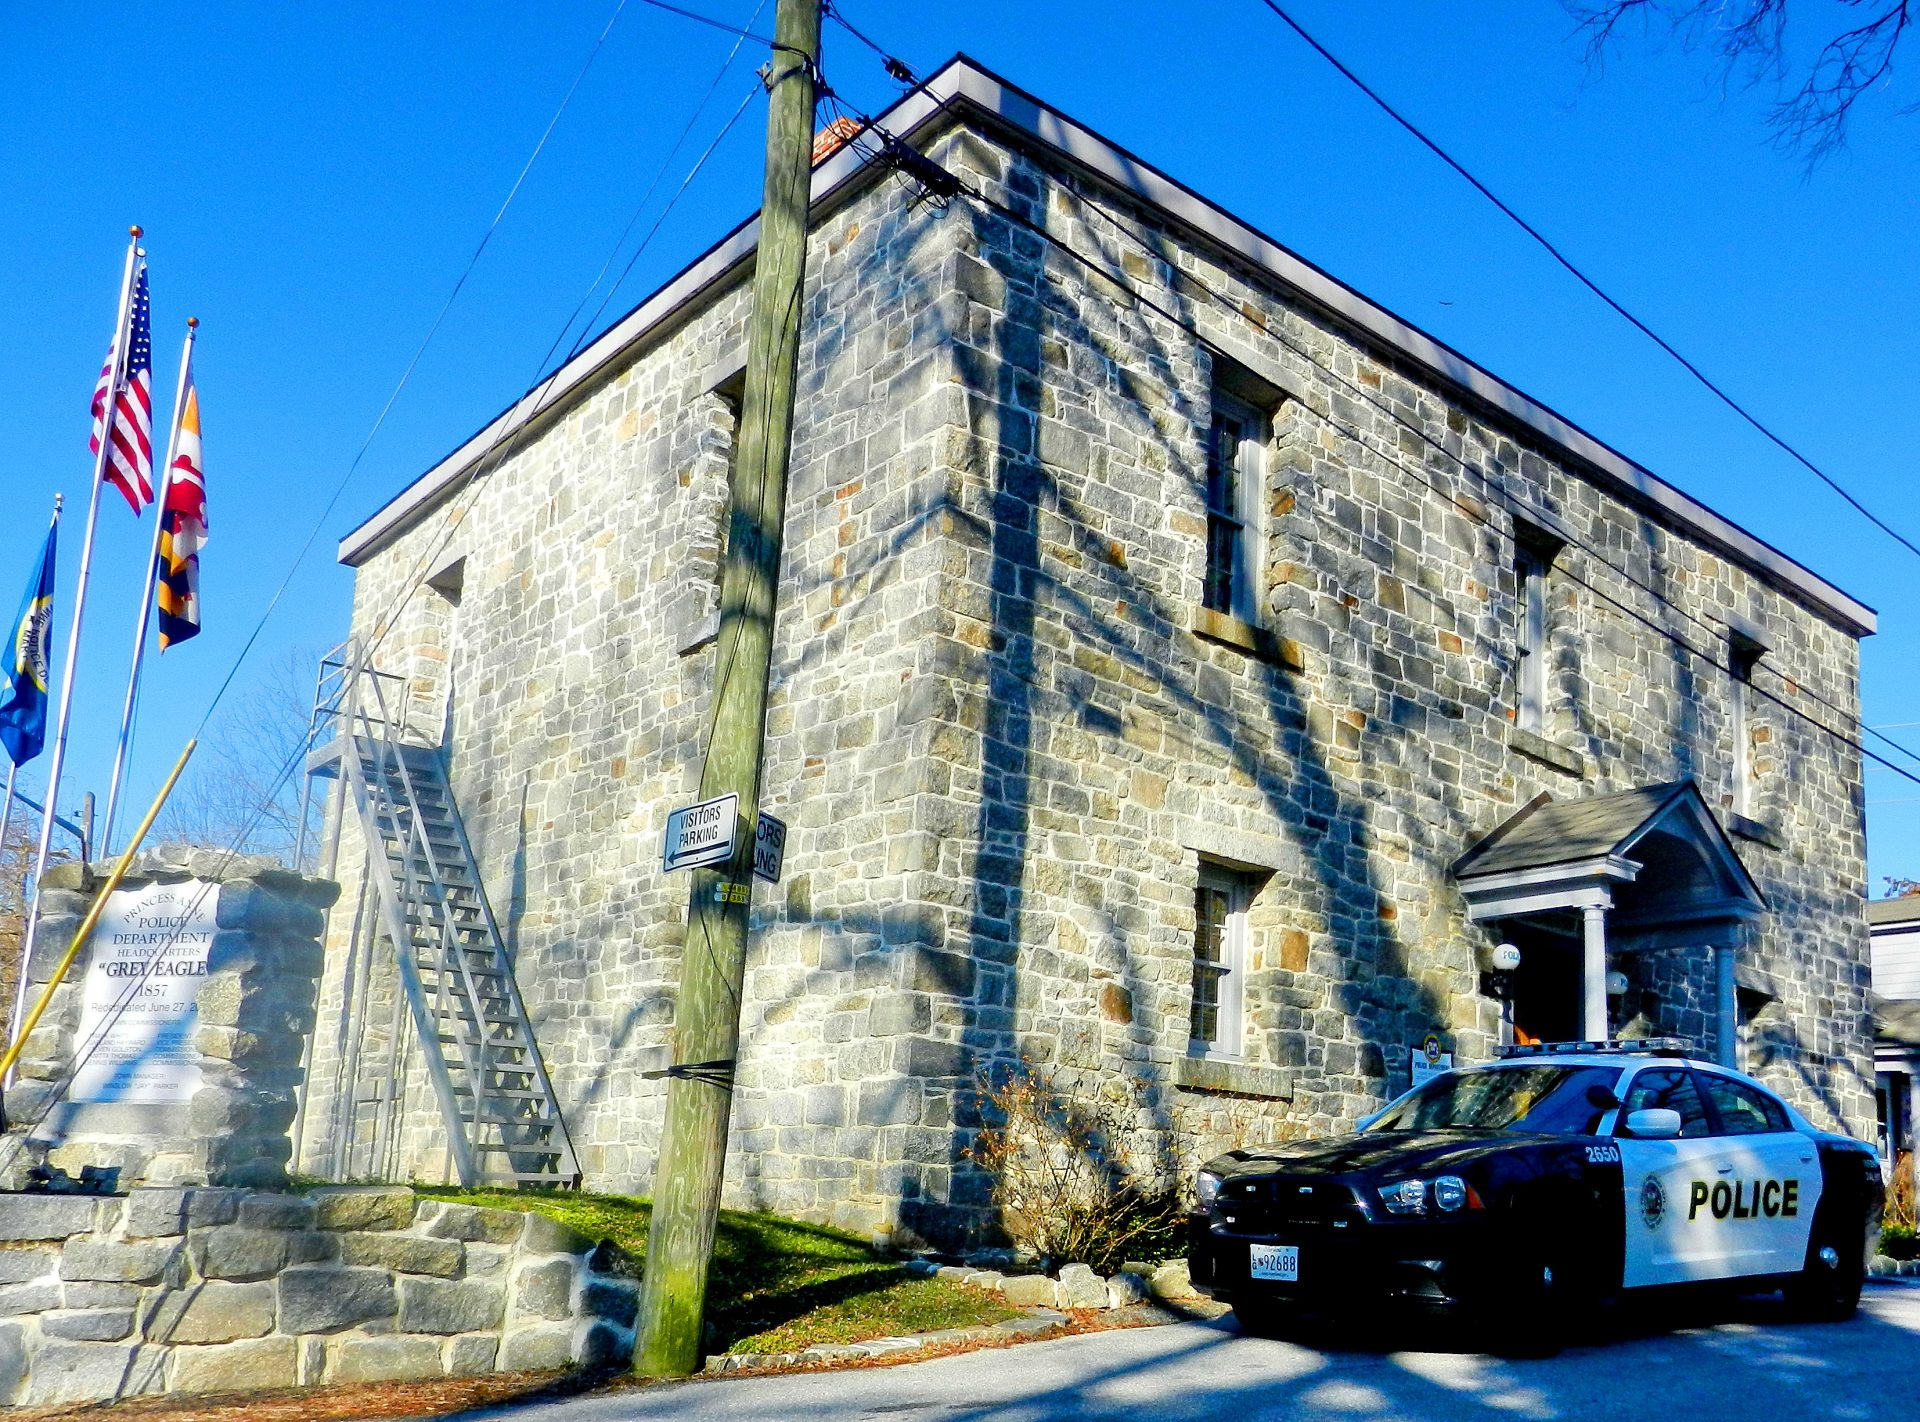 The Grey Lady, the Somerset County Jail, now serves as the headquaters for the Princess Anne Police Department.